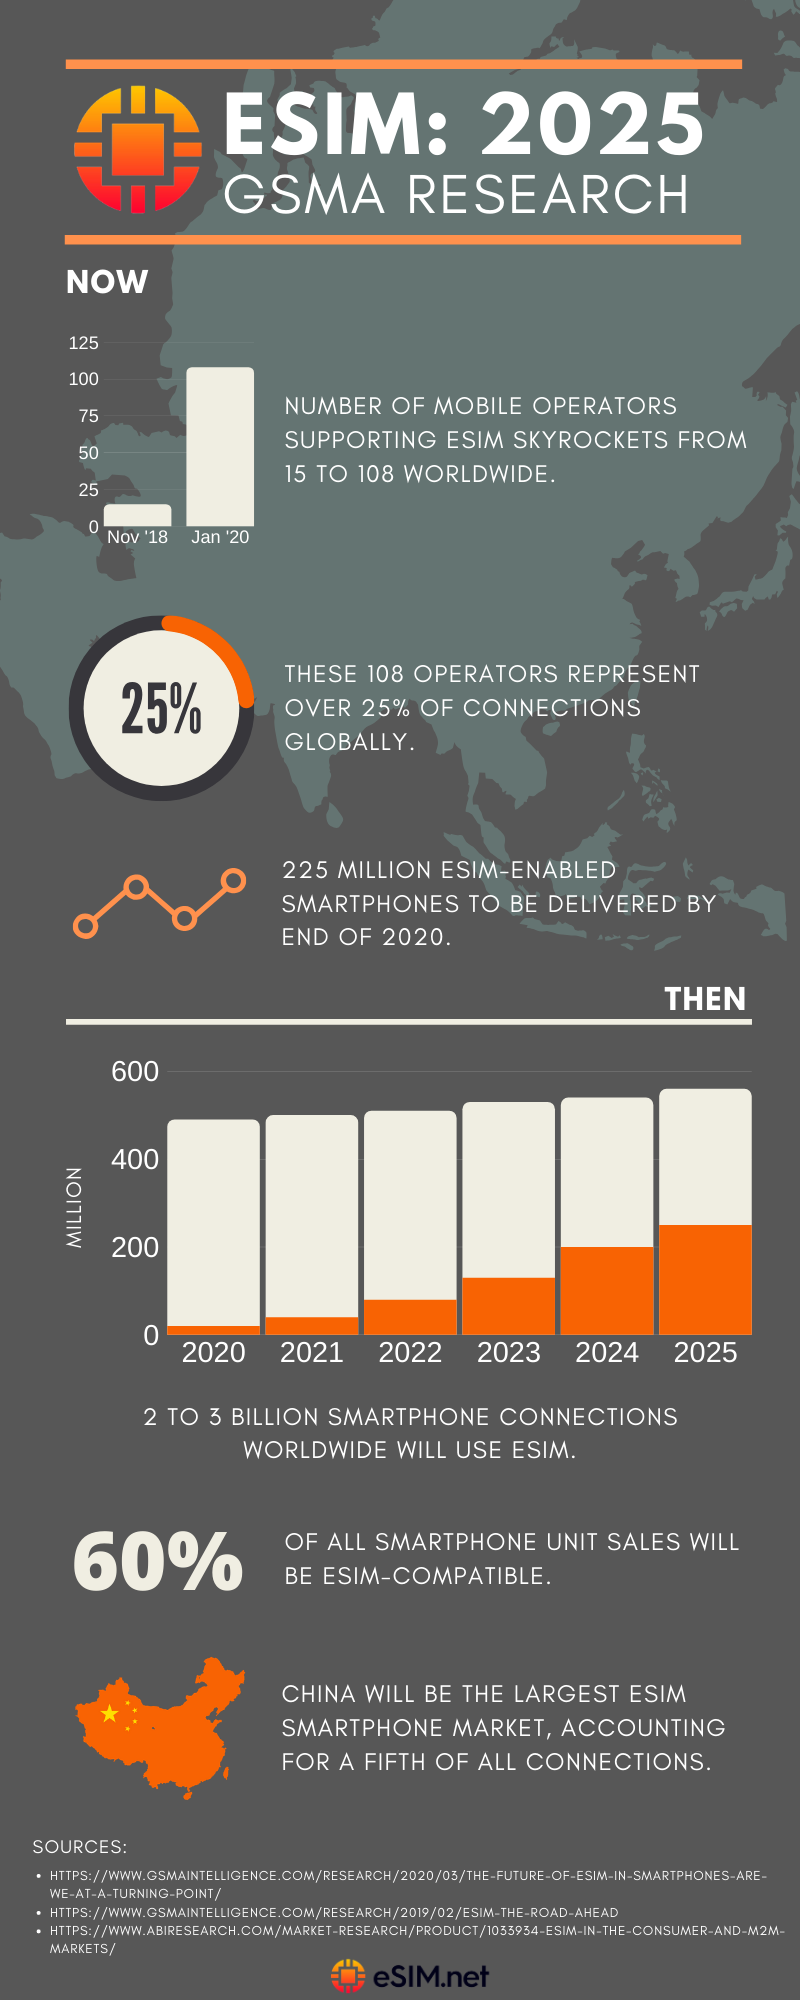 Infographic showing eSIM trends and insights from GSMA March 2020 report